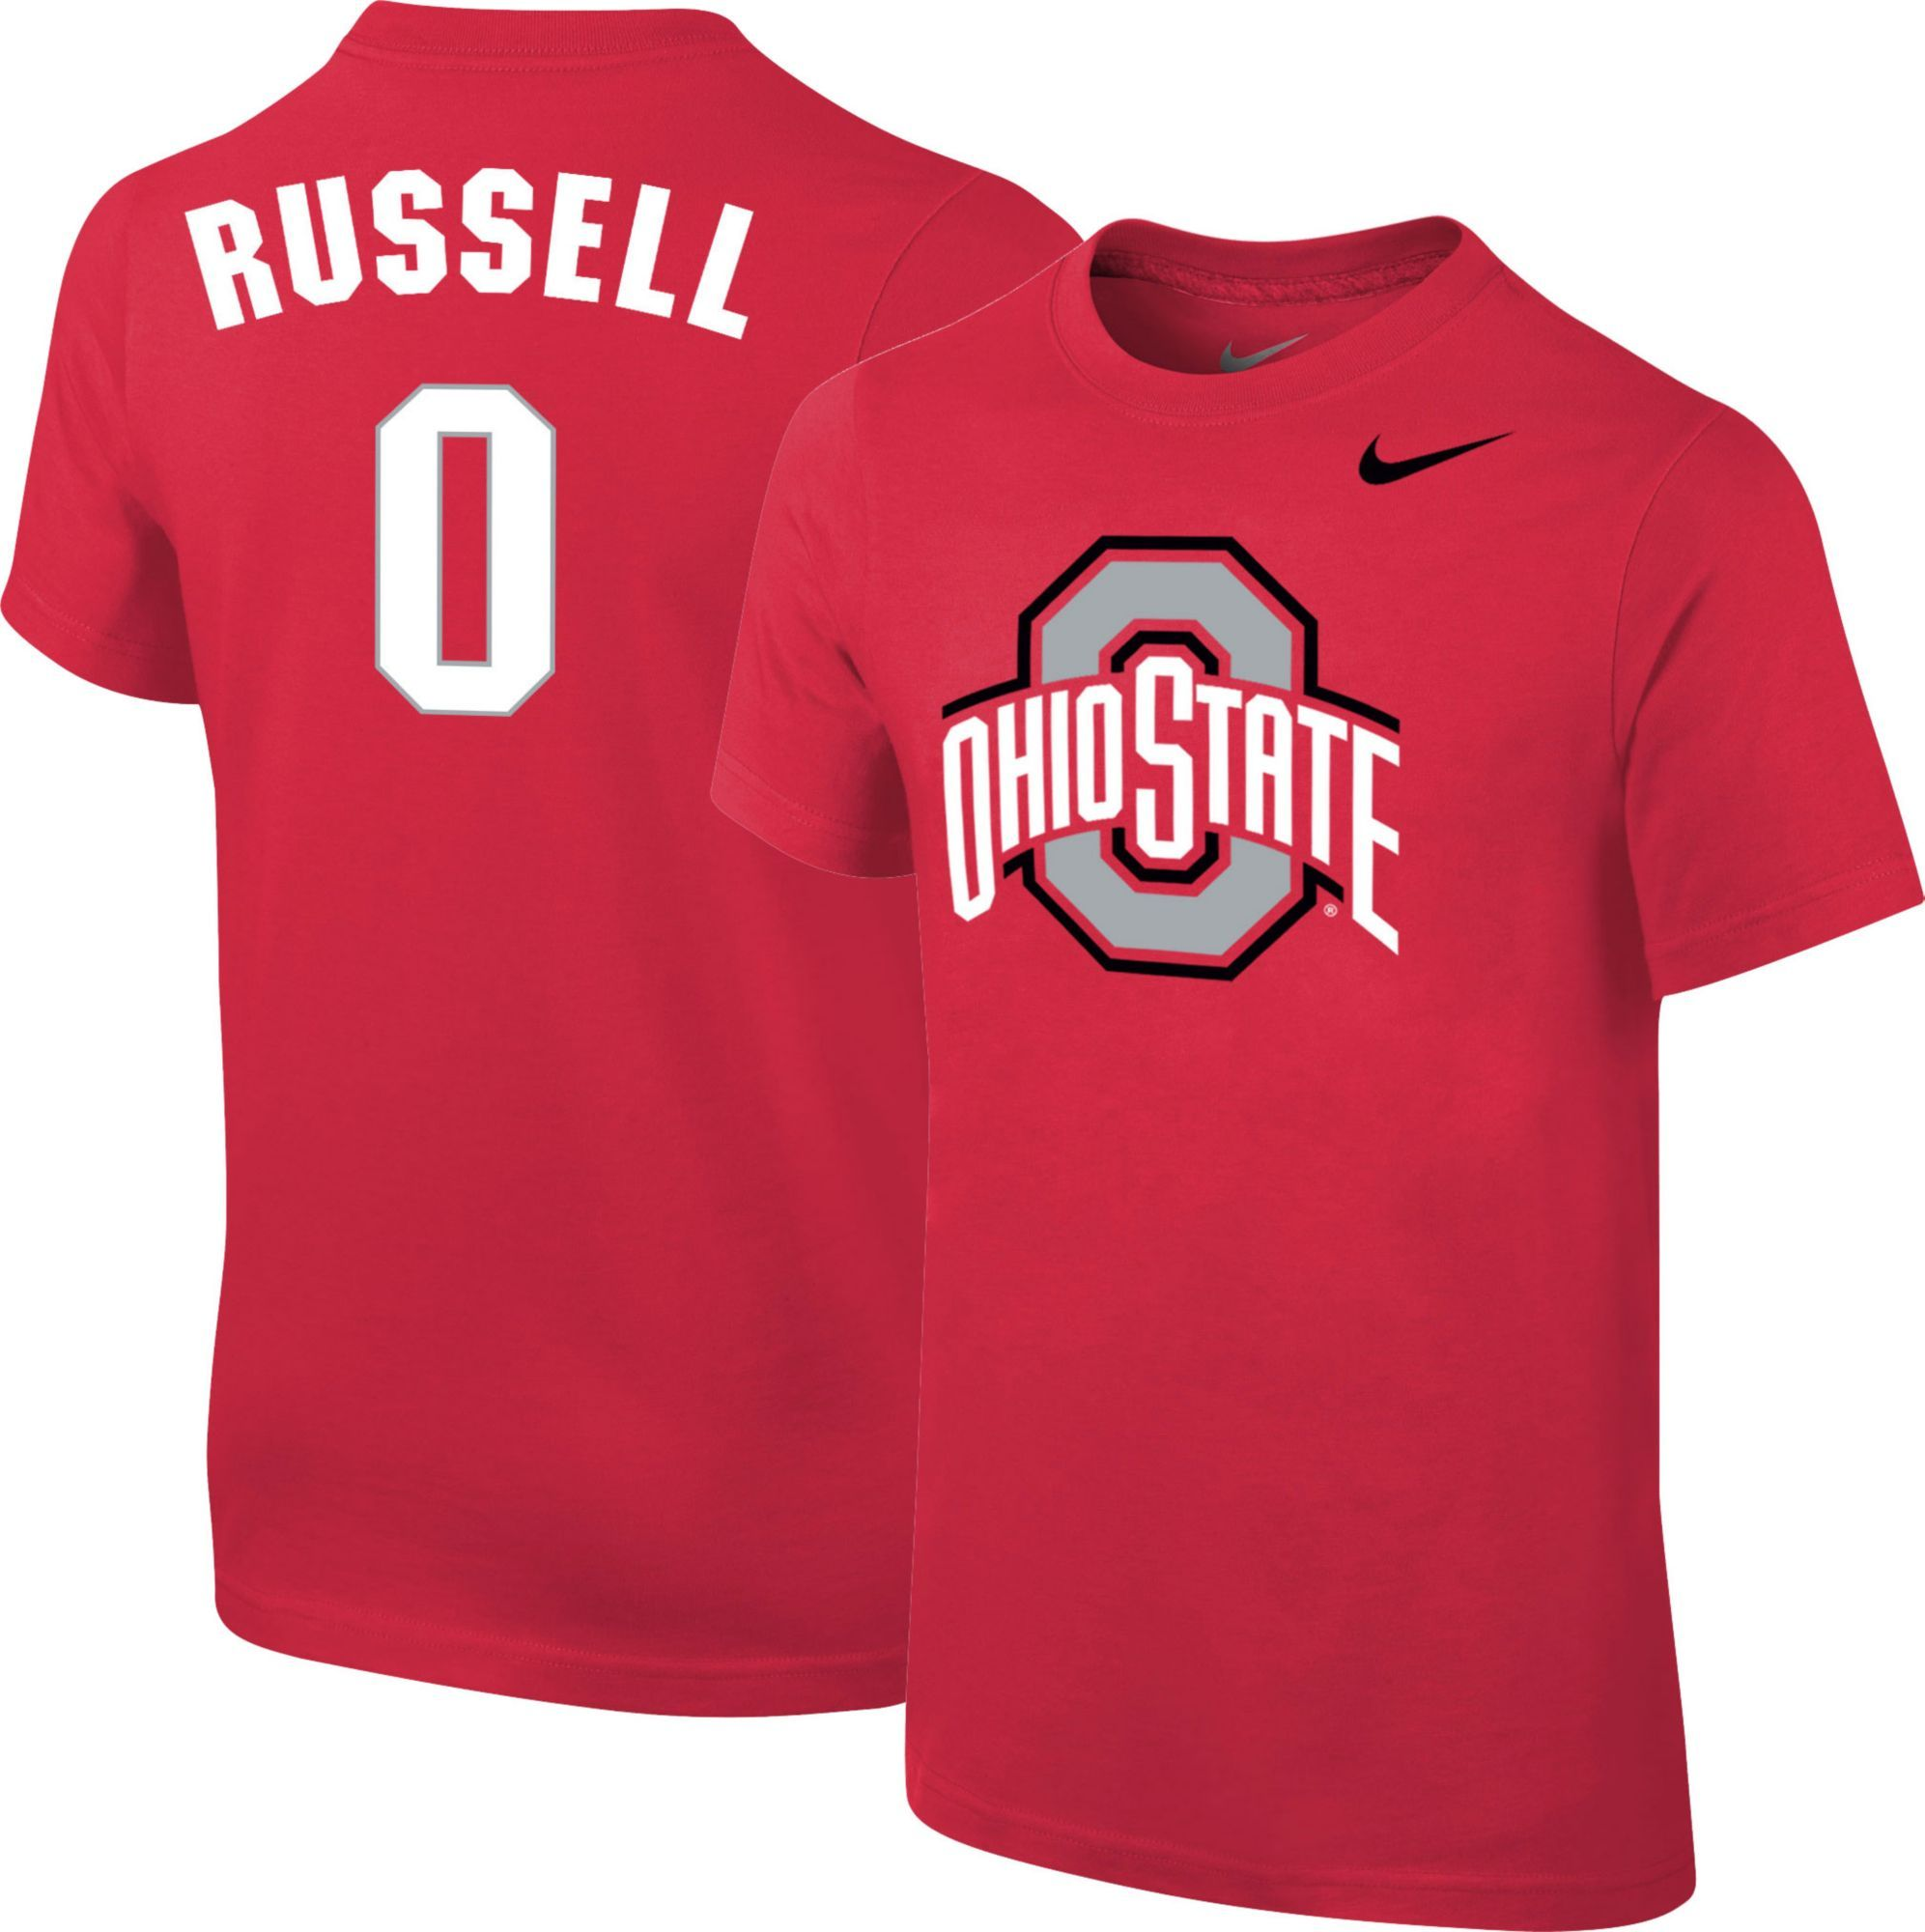 875e4a054 Nike Youth Ohio State Buckeyes D Angelo Russell  0 Scarlet Future Star  Replica Basketball Jersey T-Shirt